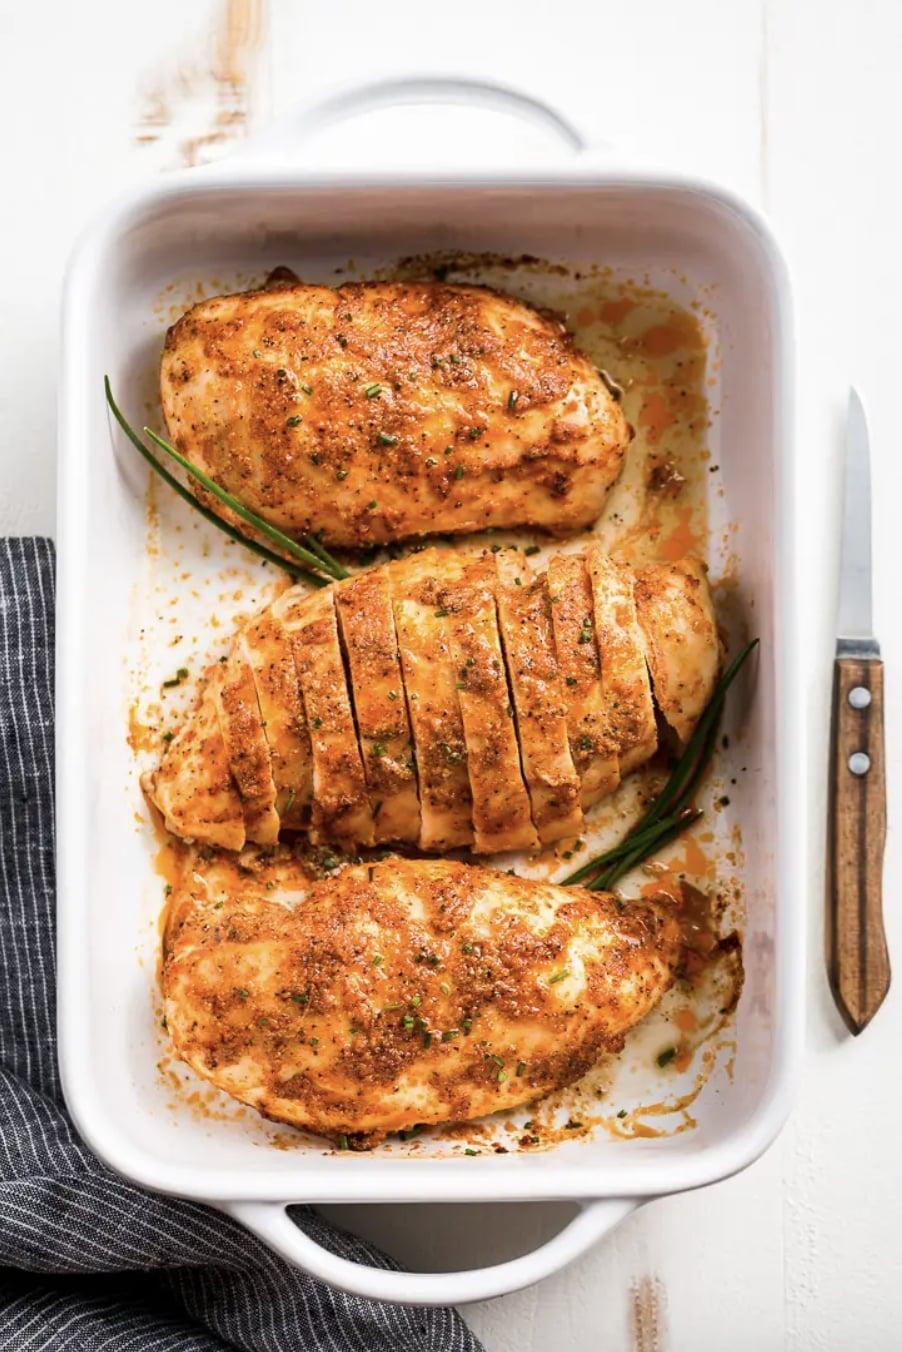 "<p>Forget the fish! Hawaiian natives are craving baked chicken instead. Made with ingredients found in the spice rack, this recipe takes the traditional chicken up a notch.</p> <p><strong>Get the recipe</strong>: <a href=""https://getinspiredeveryday.com/food/the-best-baked-chicken-breasts/"" class=""link rapid-noclick-resp"" rel=""nofollow noopener"" target=""_blank"" data-ylk=""slk:baked chicken"">baked chicken</a></p>"